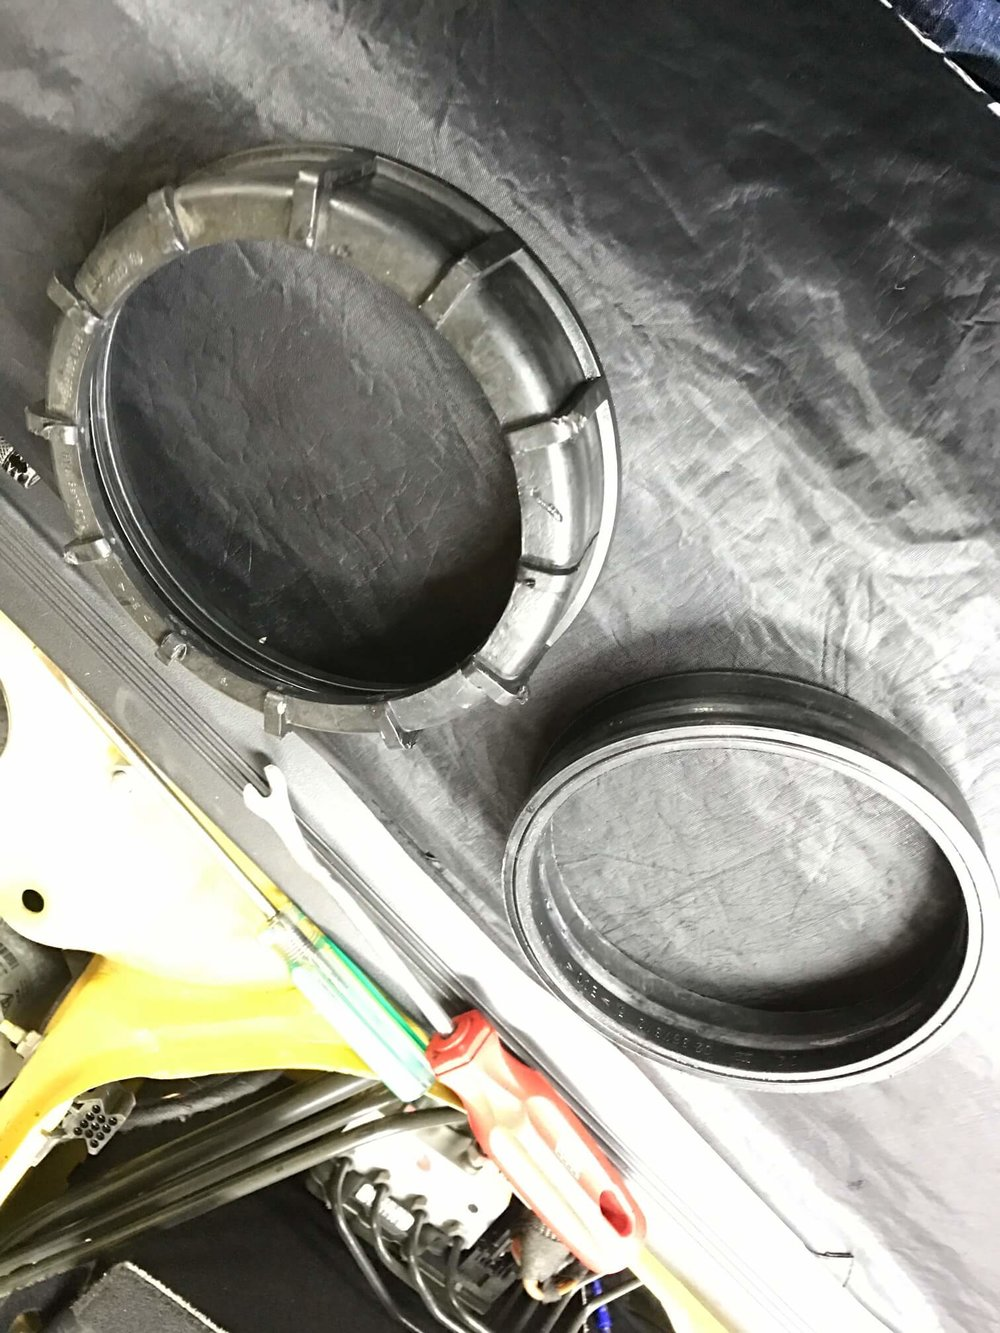 Porsche Cayman Fuel Tank Seal Repair